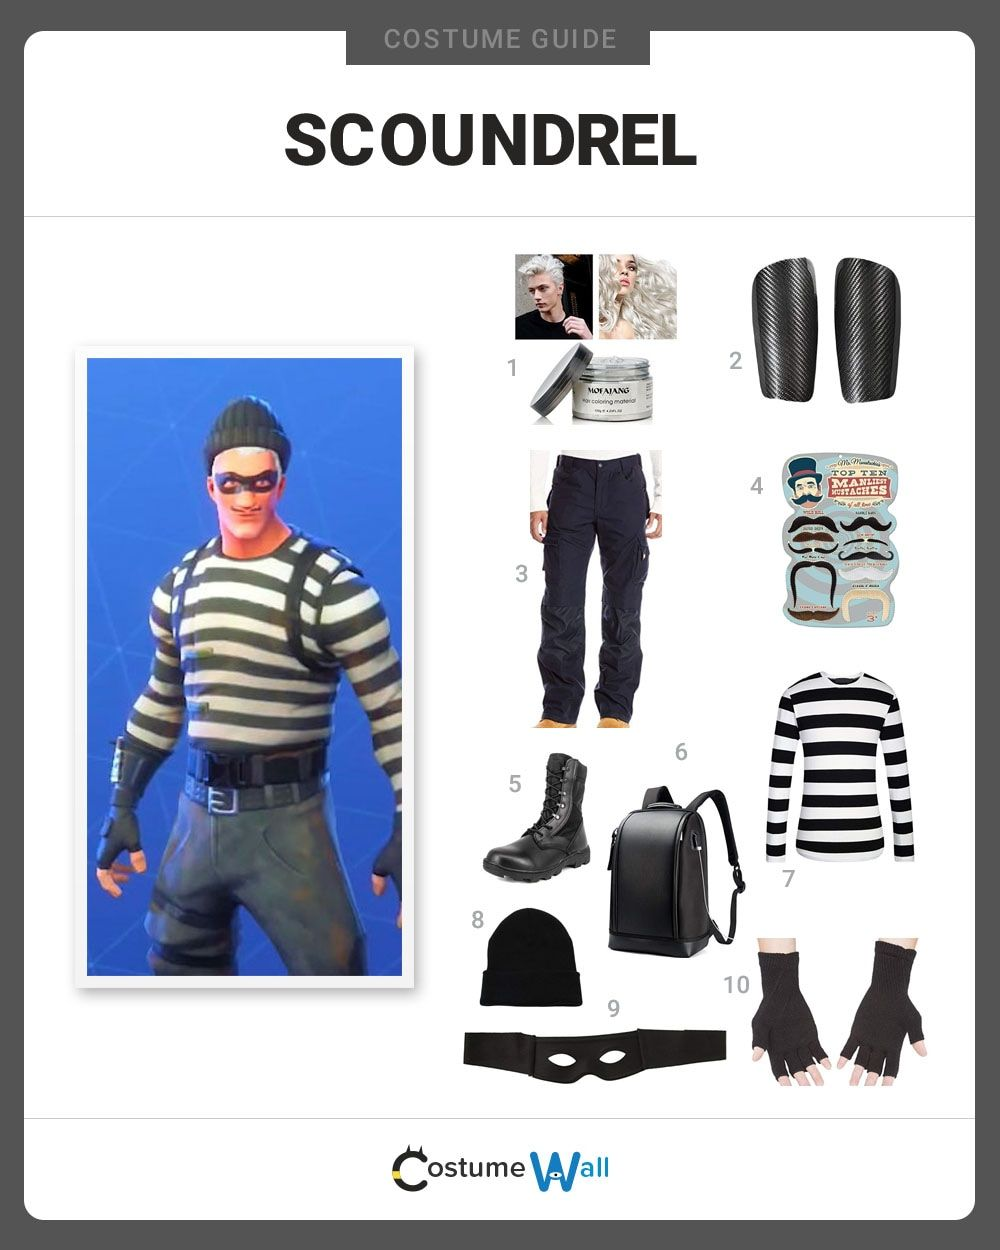 the best scoundrel costume guide online capture the look of this cool fortnite battle royale skin part of the epic jailbird set - fortnite baywatch skin